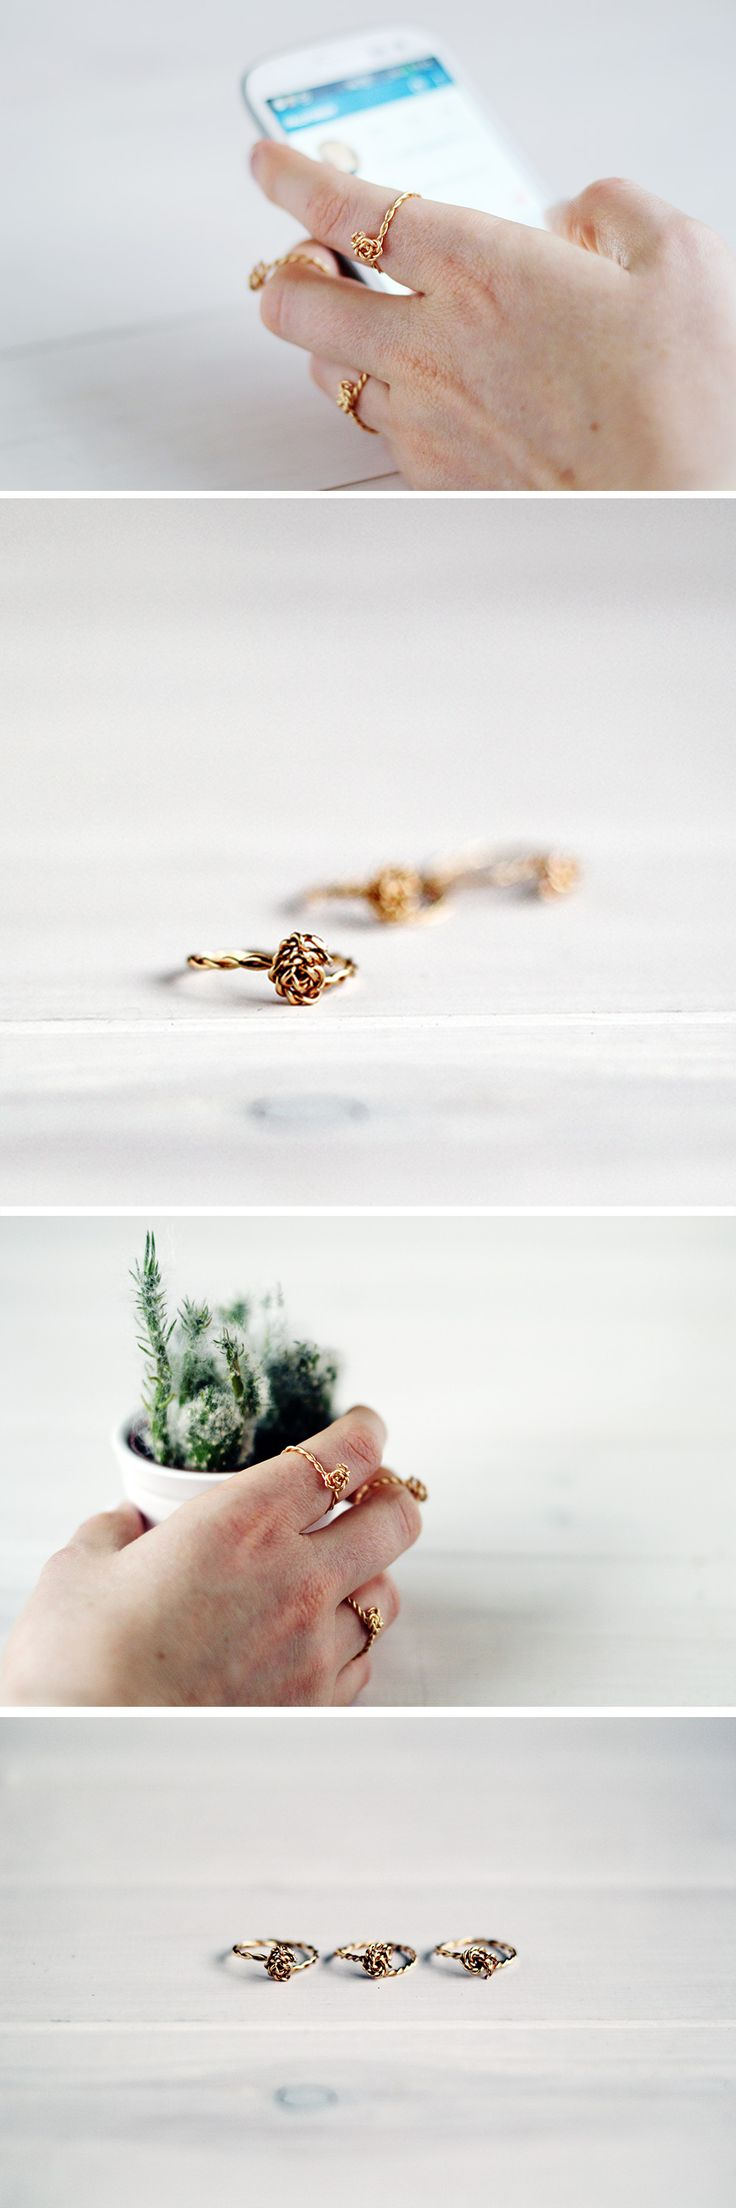 Twisted Wire Rings tutorials Fall For DIY